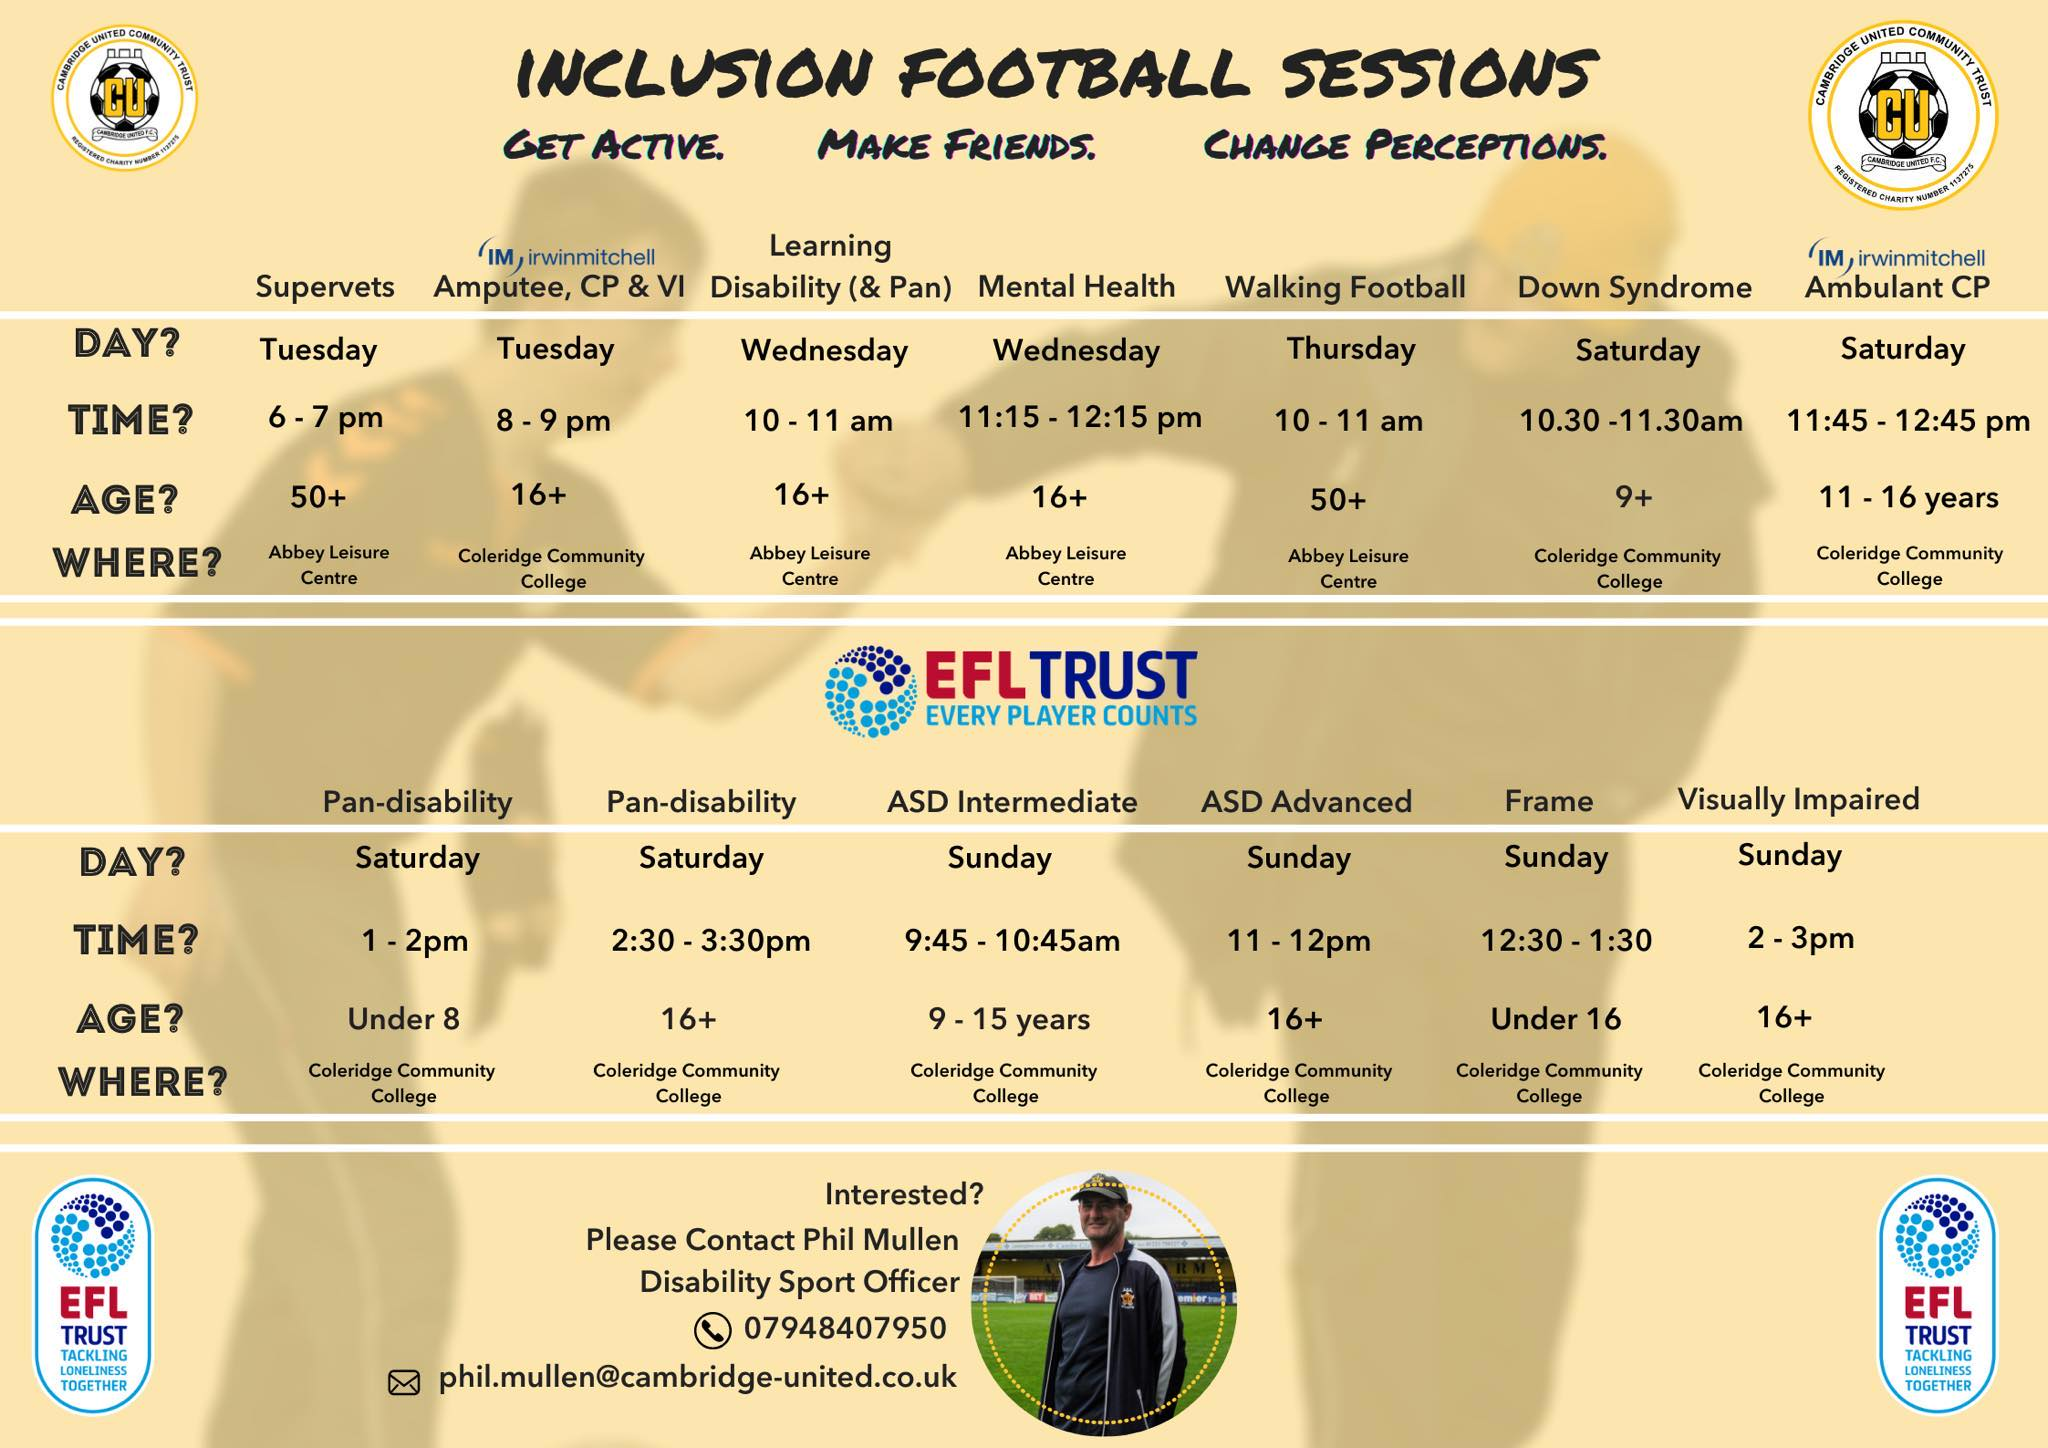 Details of CUCT Disability Football Sessions